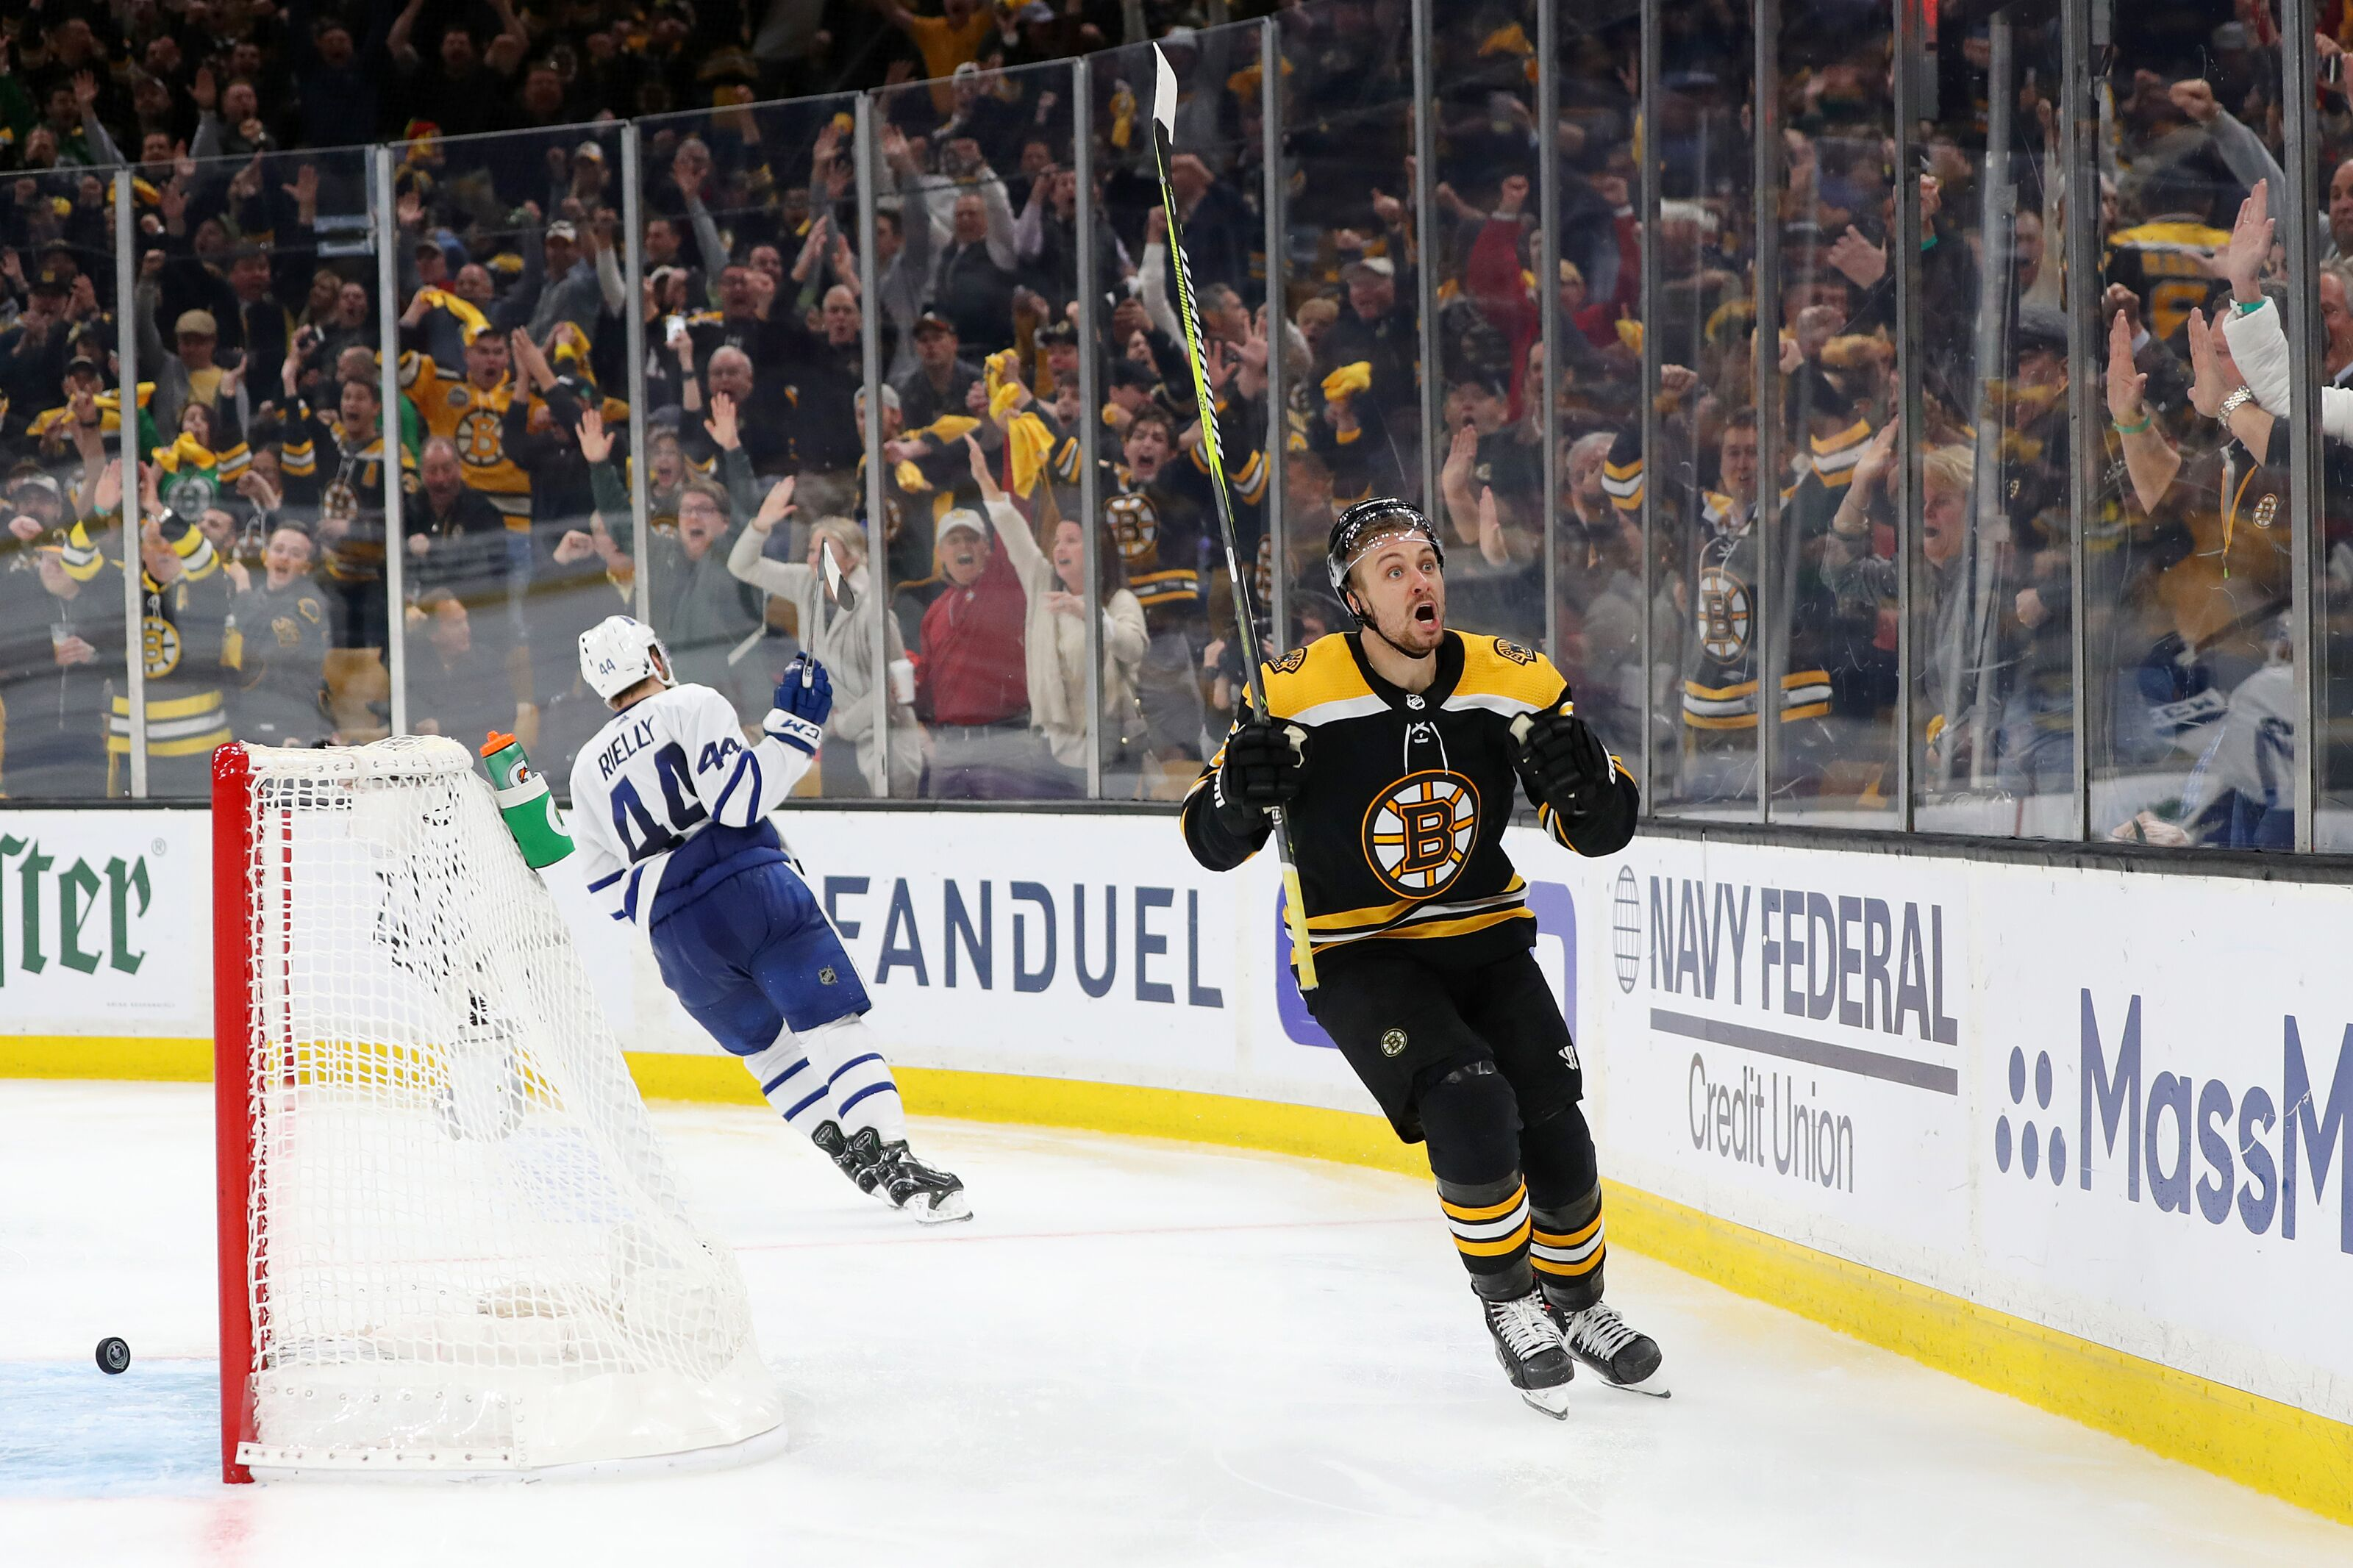 Boston Bruins: Top 3 impact players to watch against the Maple Leafs